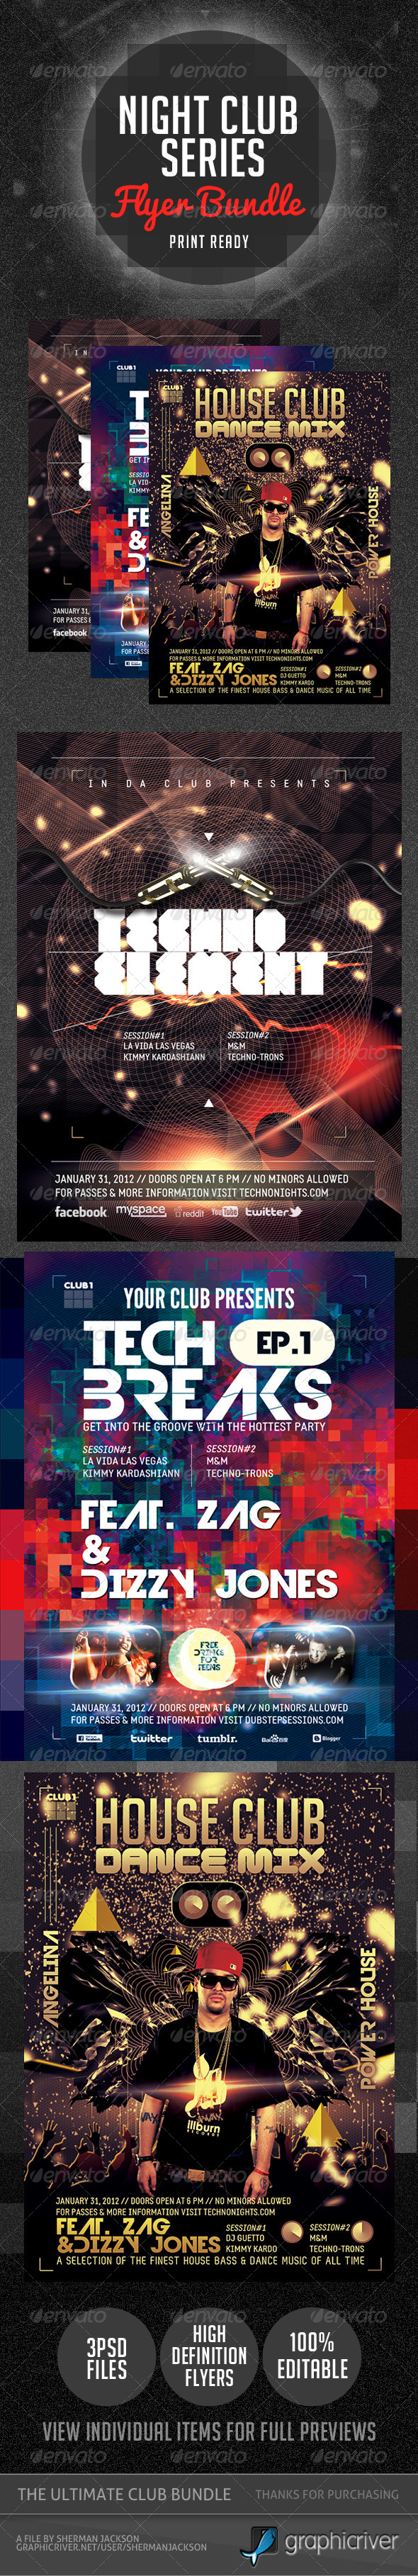 Night Club Series Flyer Bundle V.1 - Clubs & Parties Events